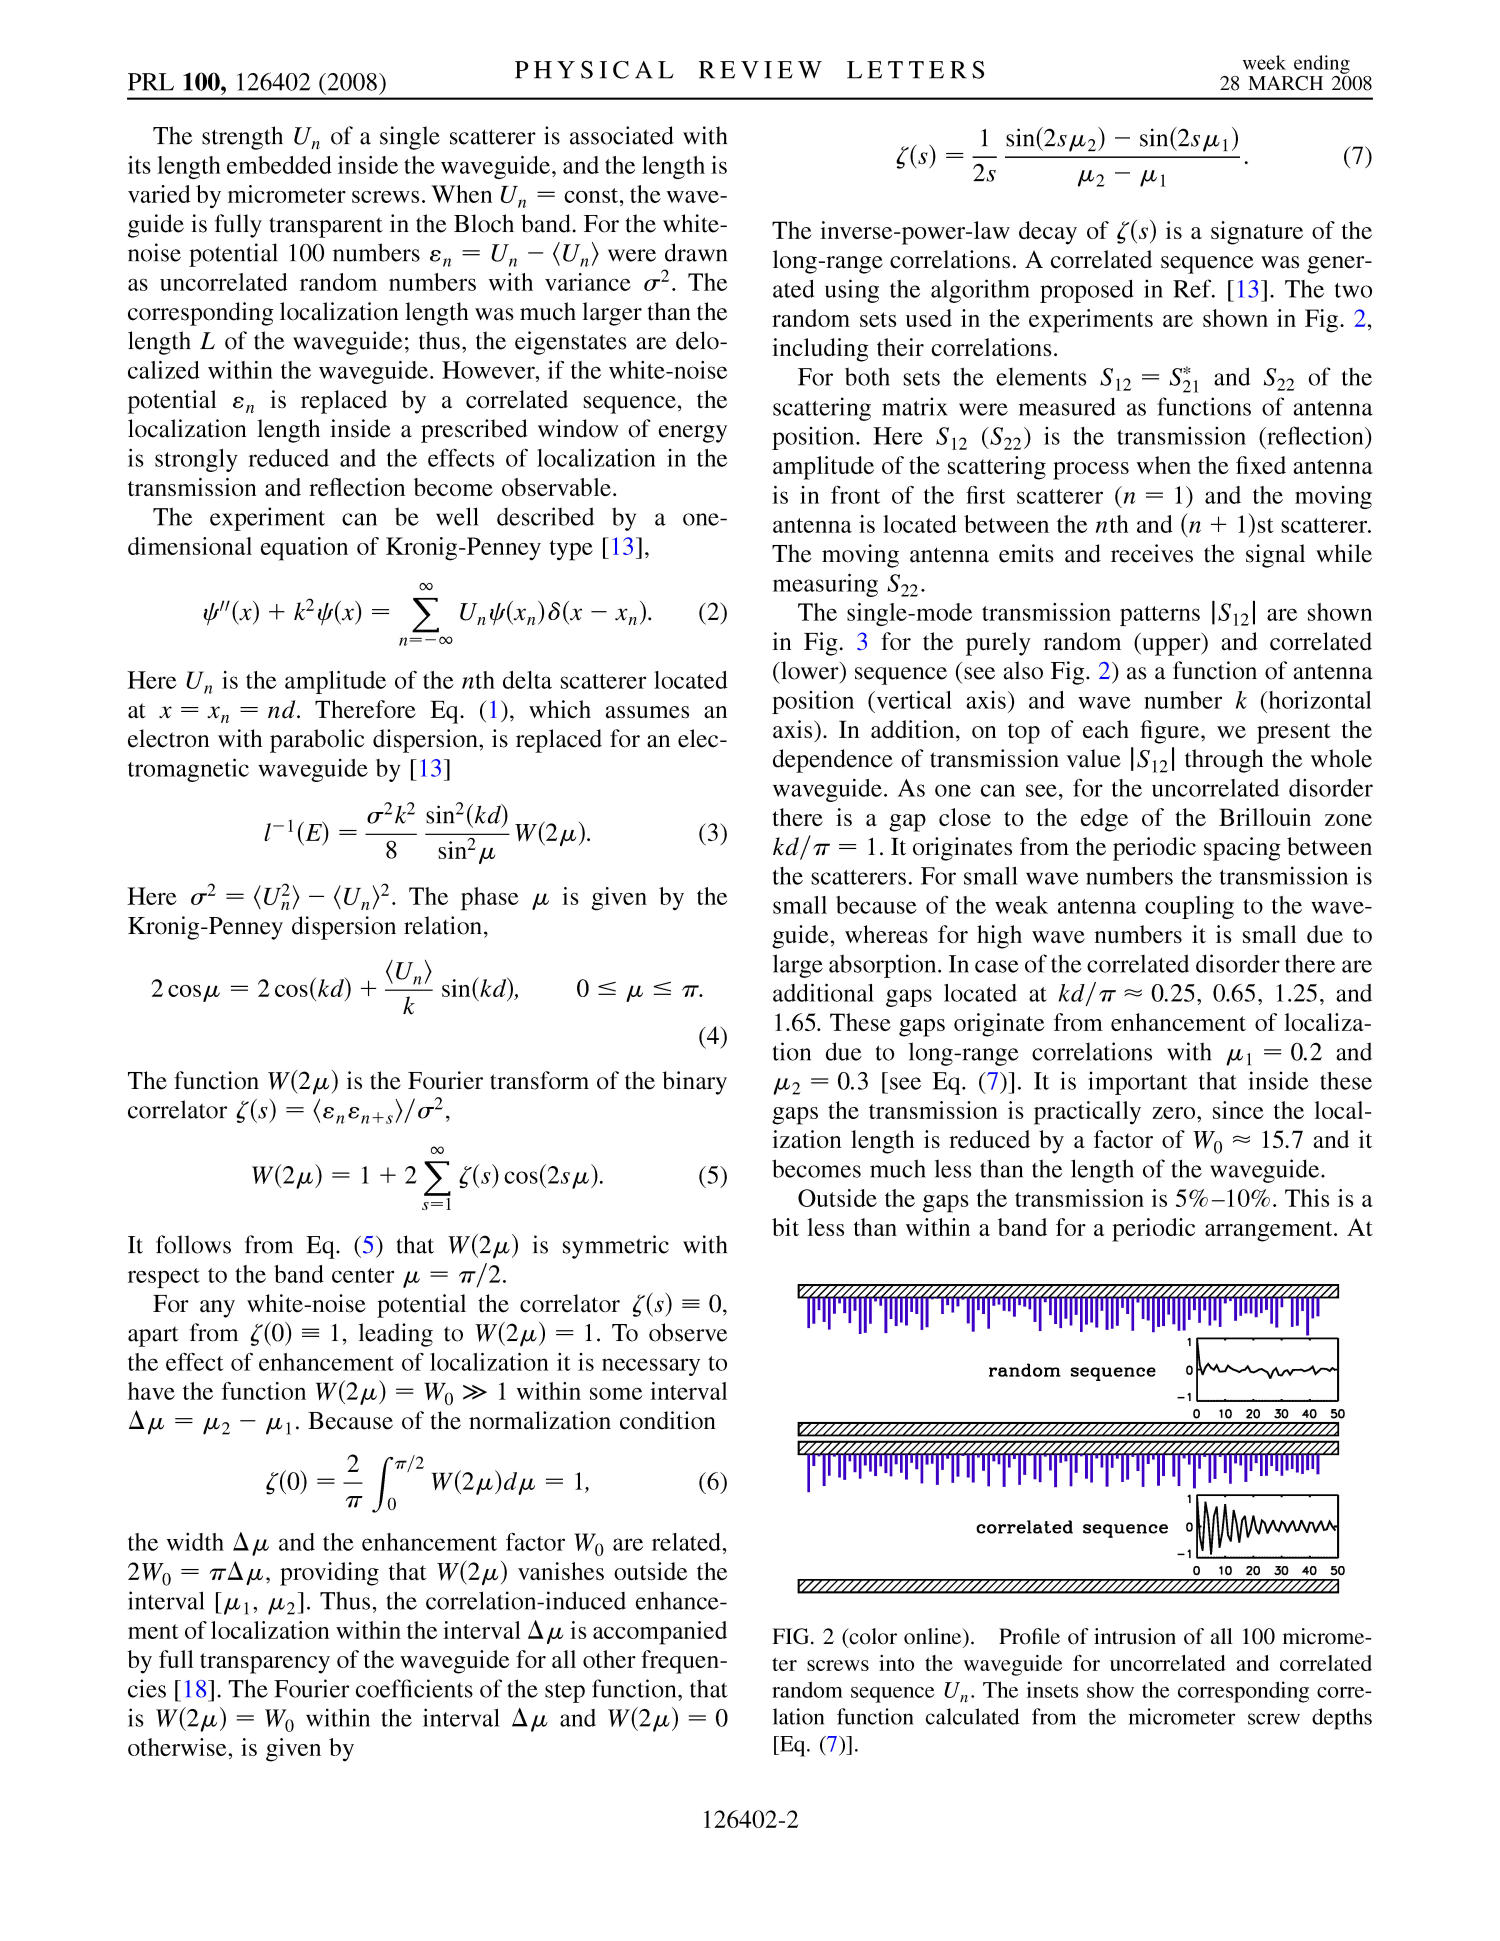 Enhancement of Localization in One-Dimensional Random Potentials with Long-Range Correlations                                                                                                      2